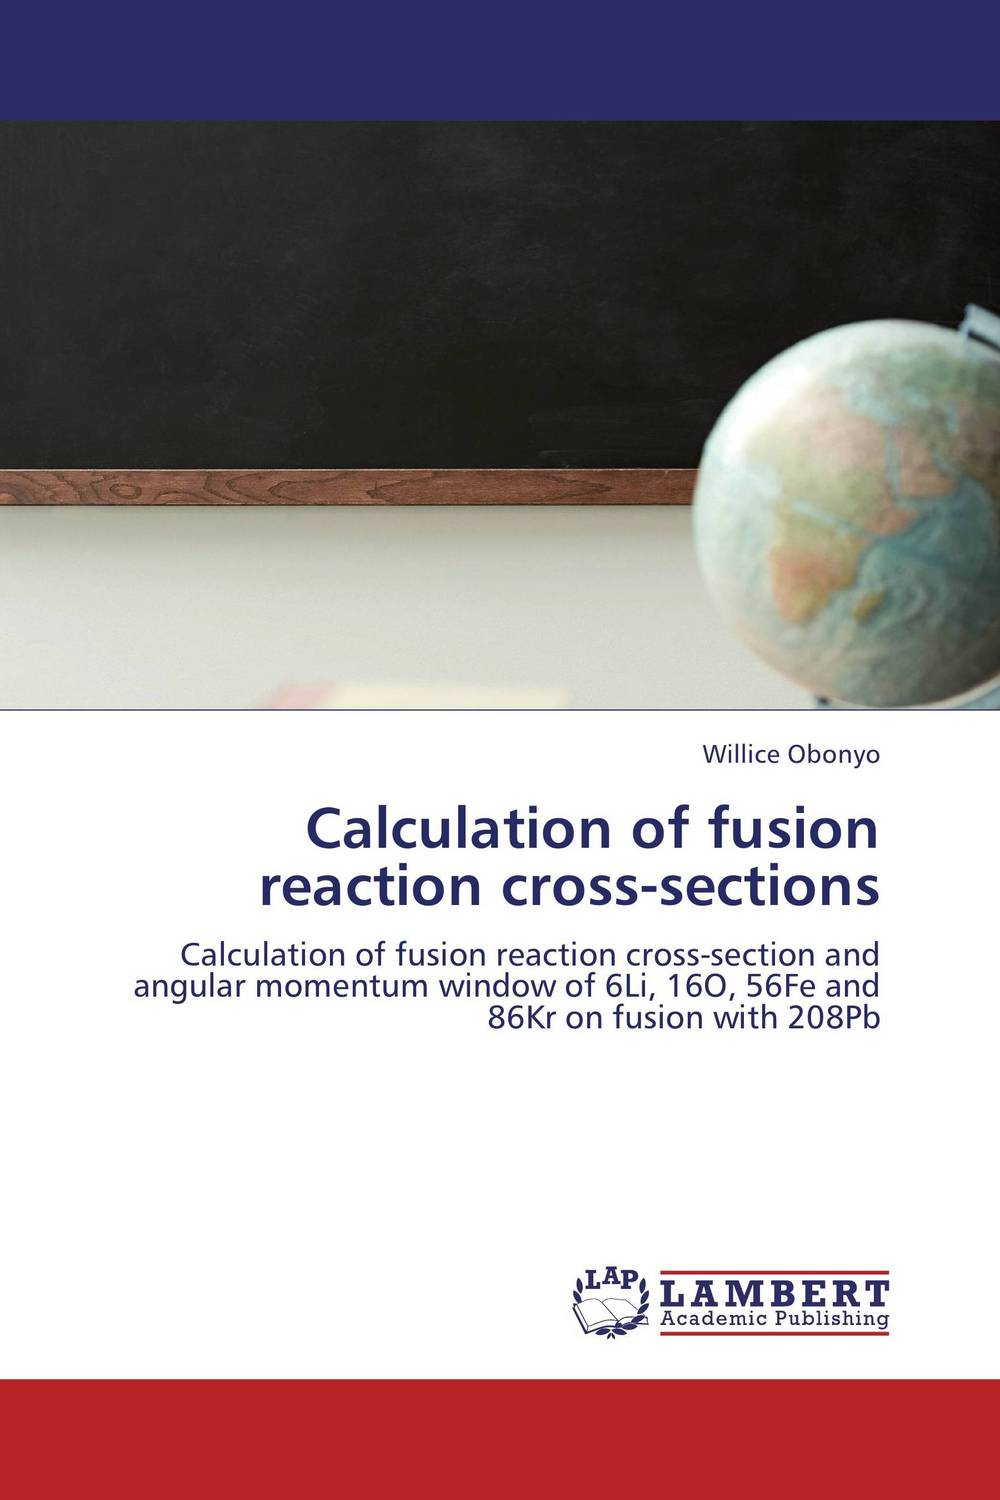 Calculation of fusion reaction cross-sections handbook of the exhibition of napier relics and of books instruments and devices for facilitating calculation